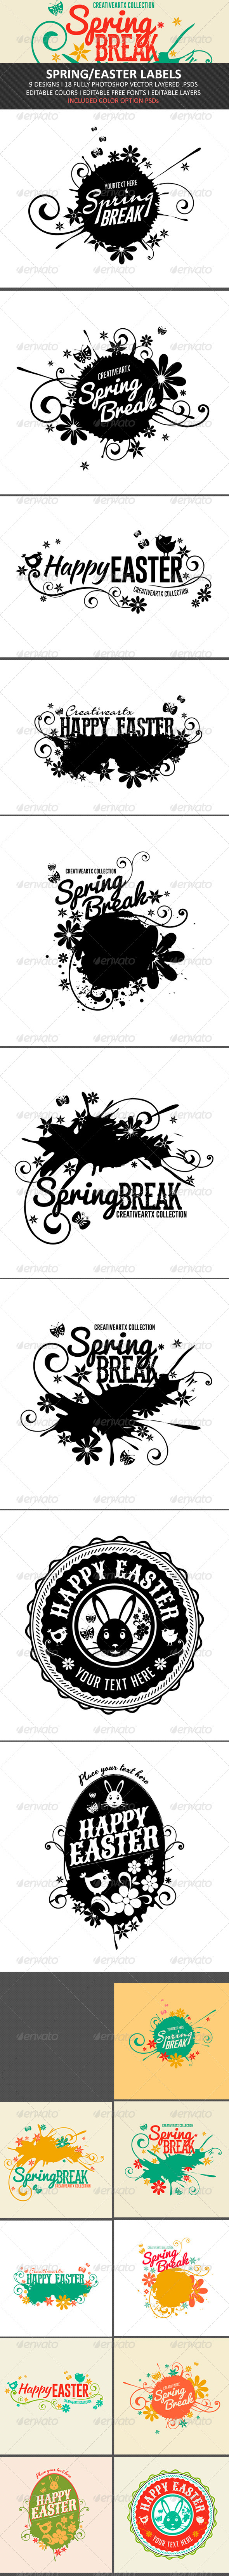 GraphicRiver Spring Easter Labels 7022708